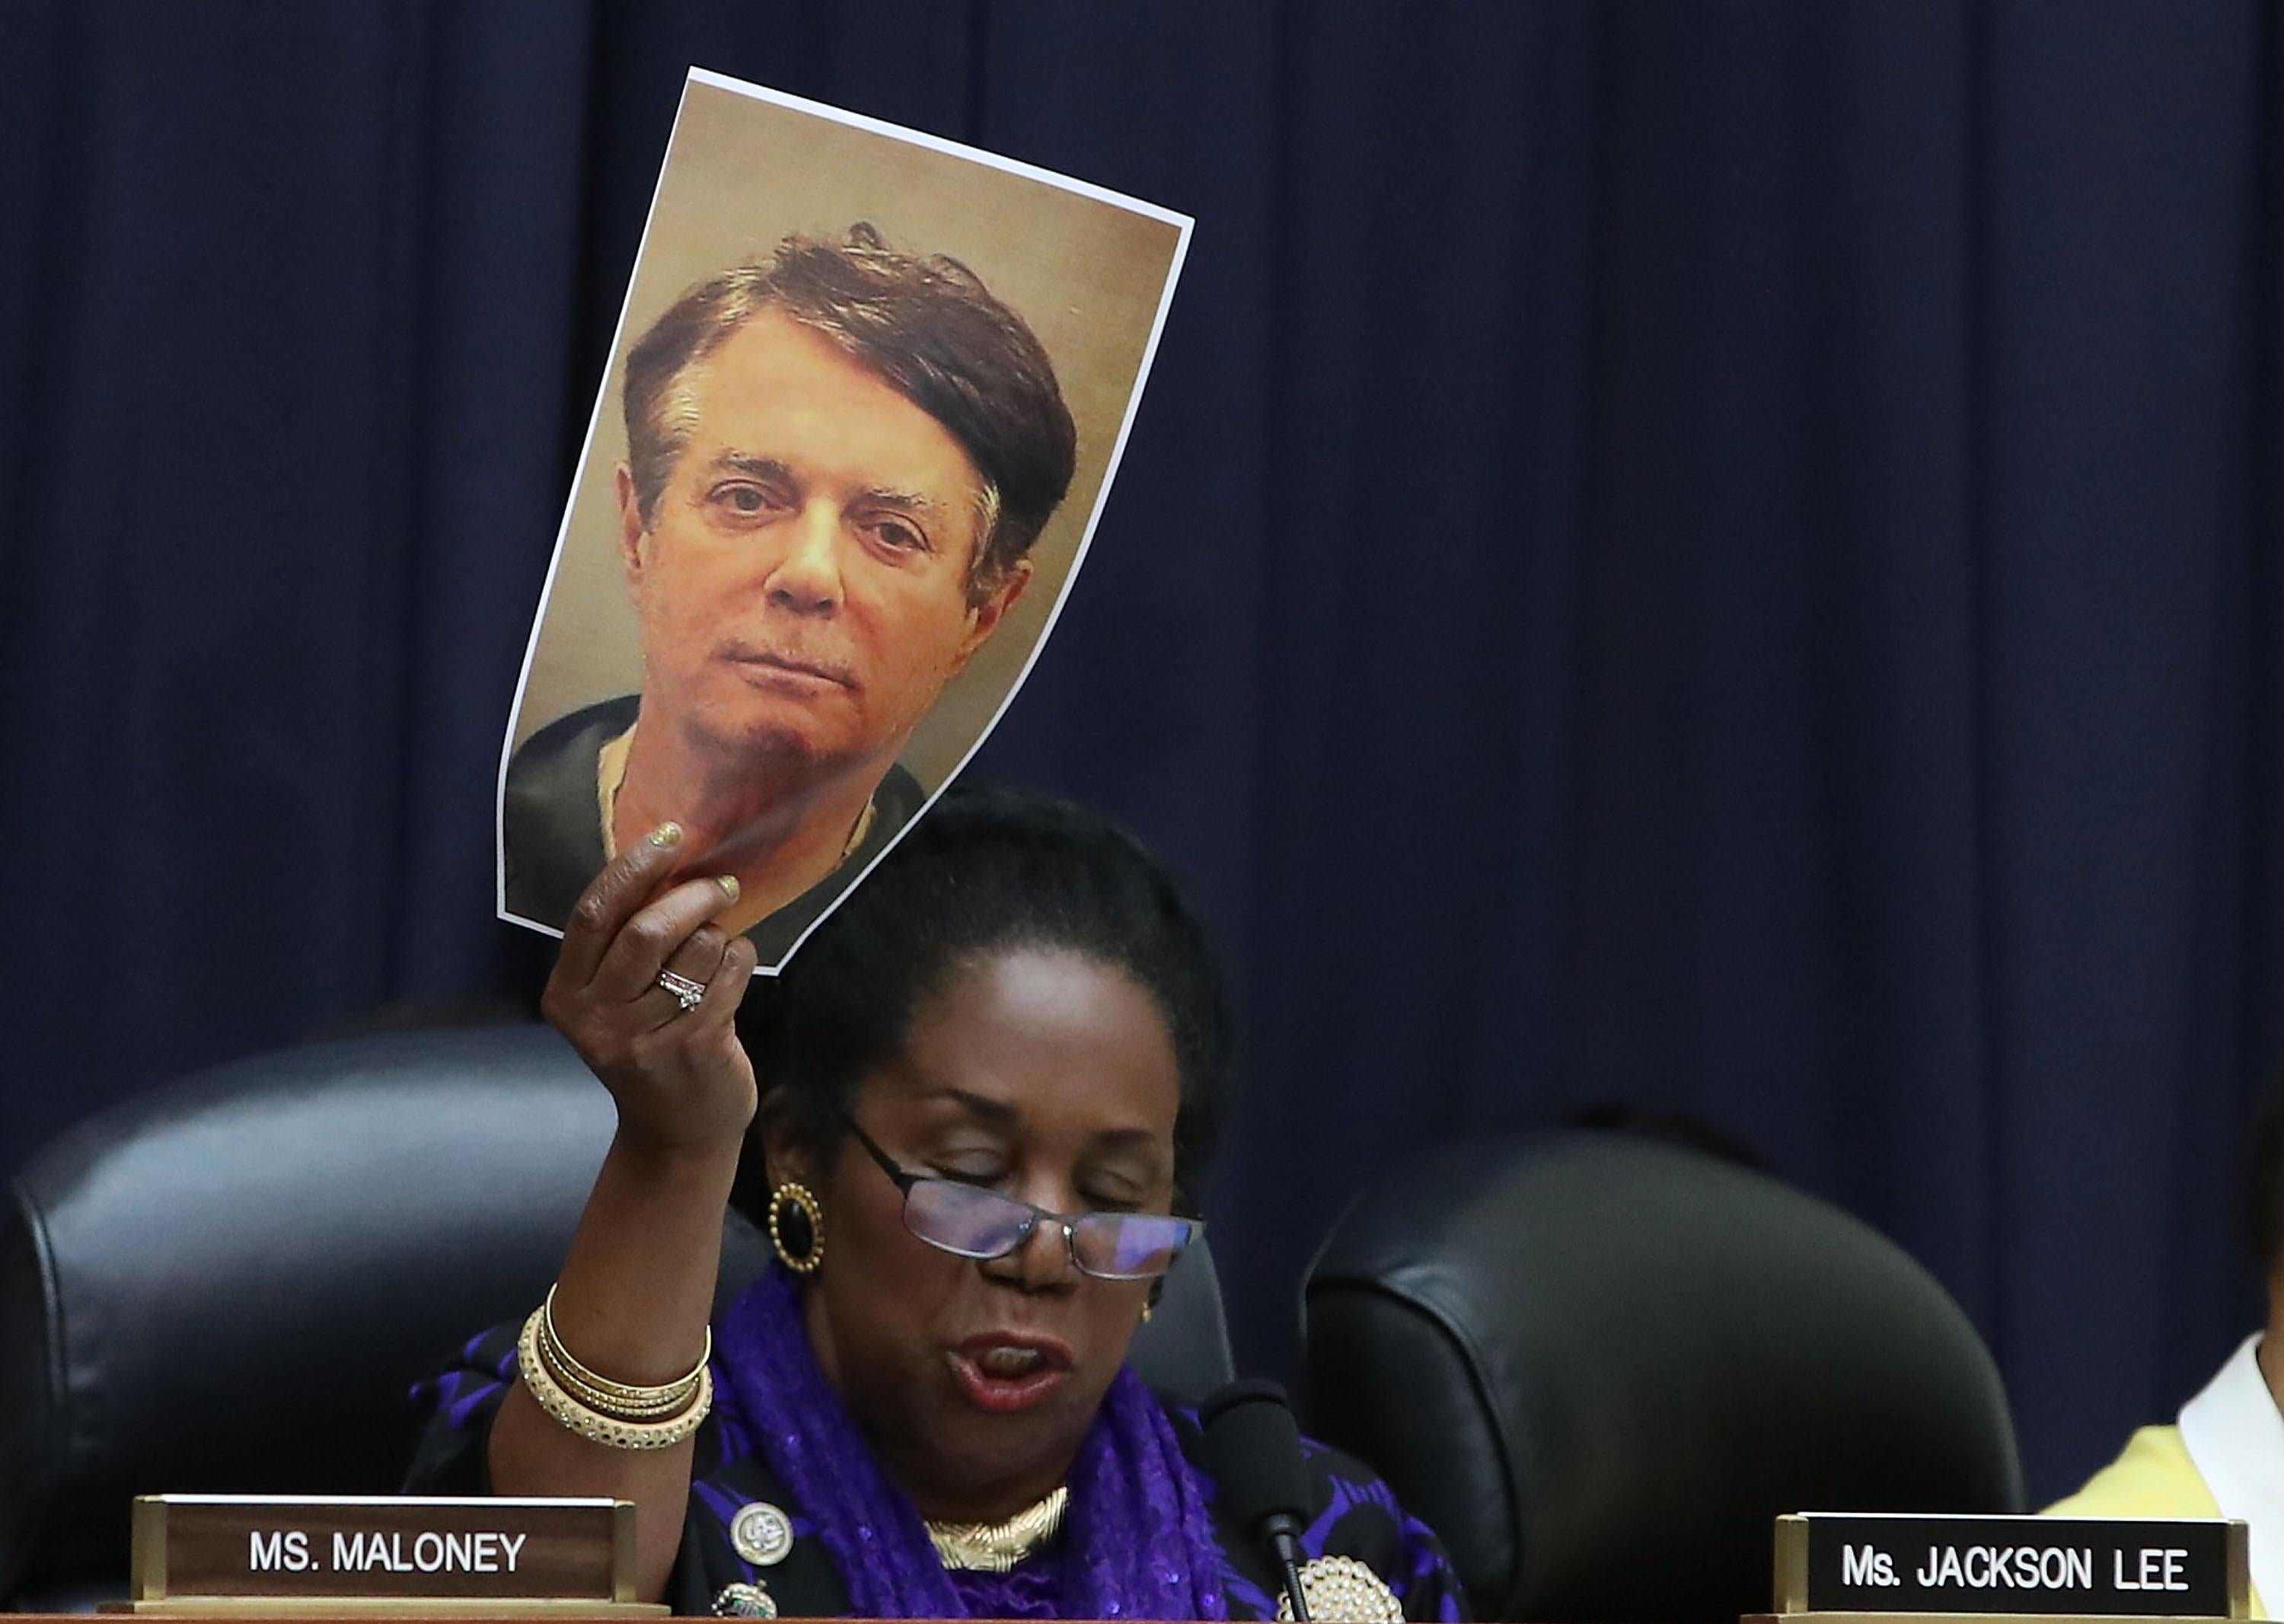 Rep. Sheila Jackson Lee holds up a mug shot of Paul Manafort during a Congressional hearing.